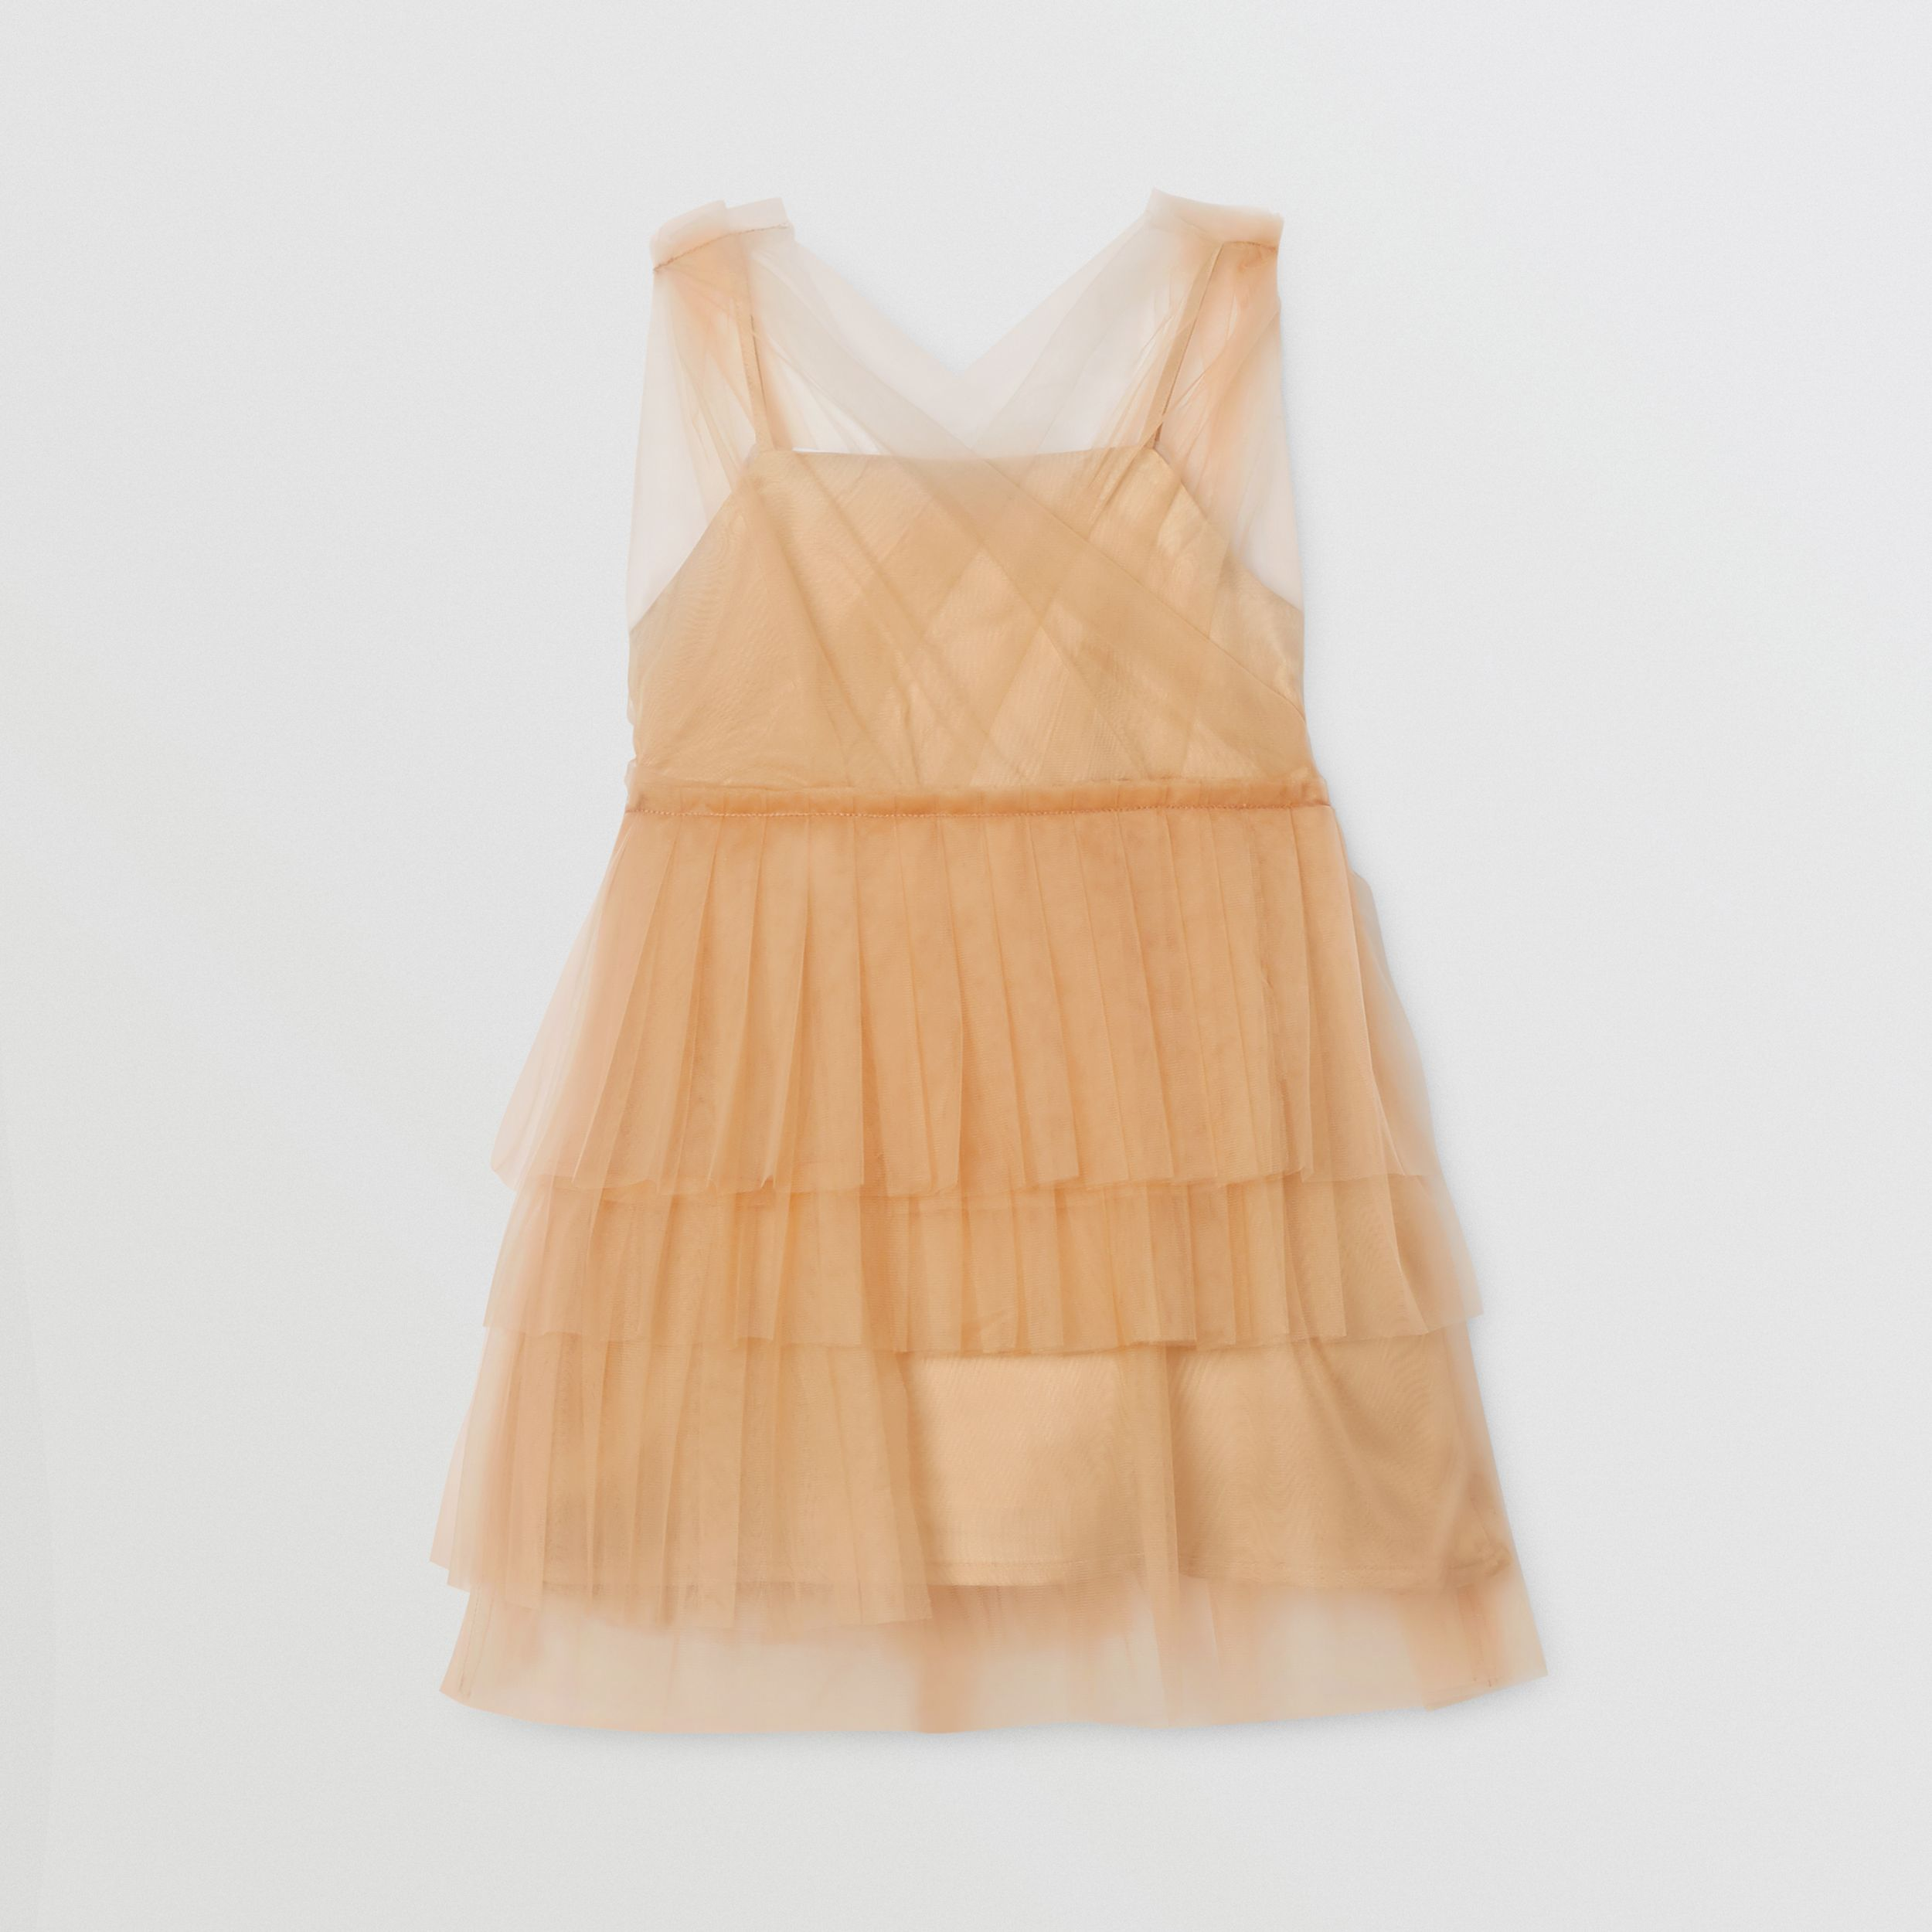 Tulle Tiered Dress in Oyster Beige - Children | Burberry - 4